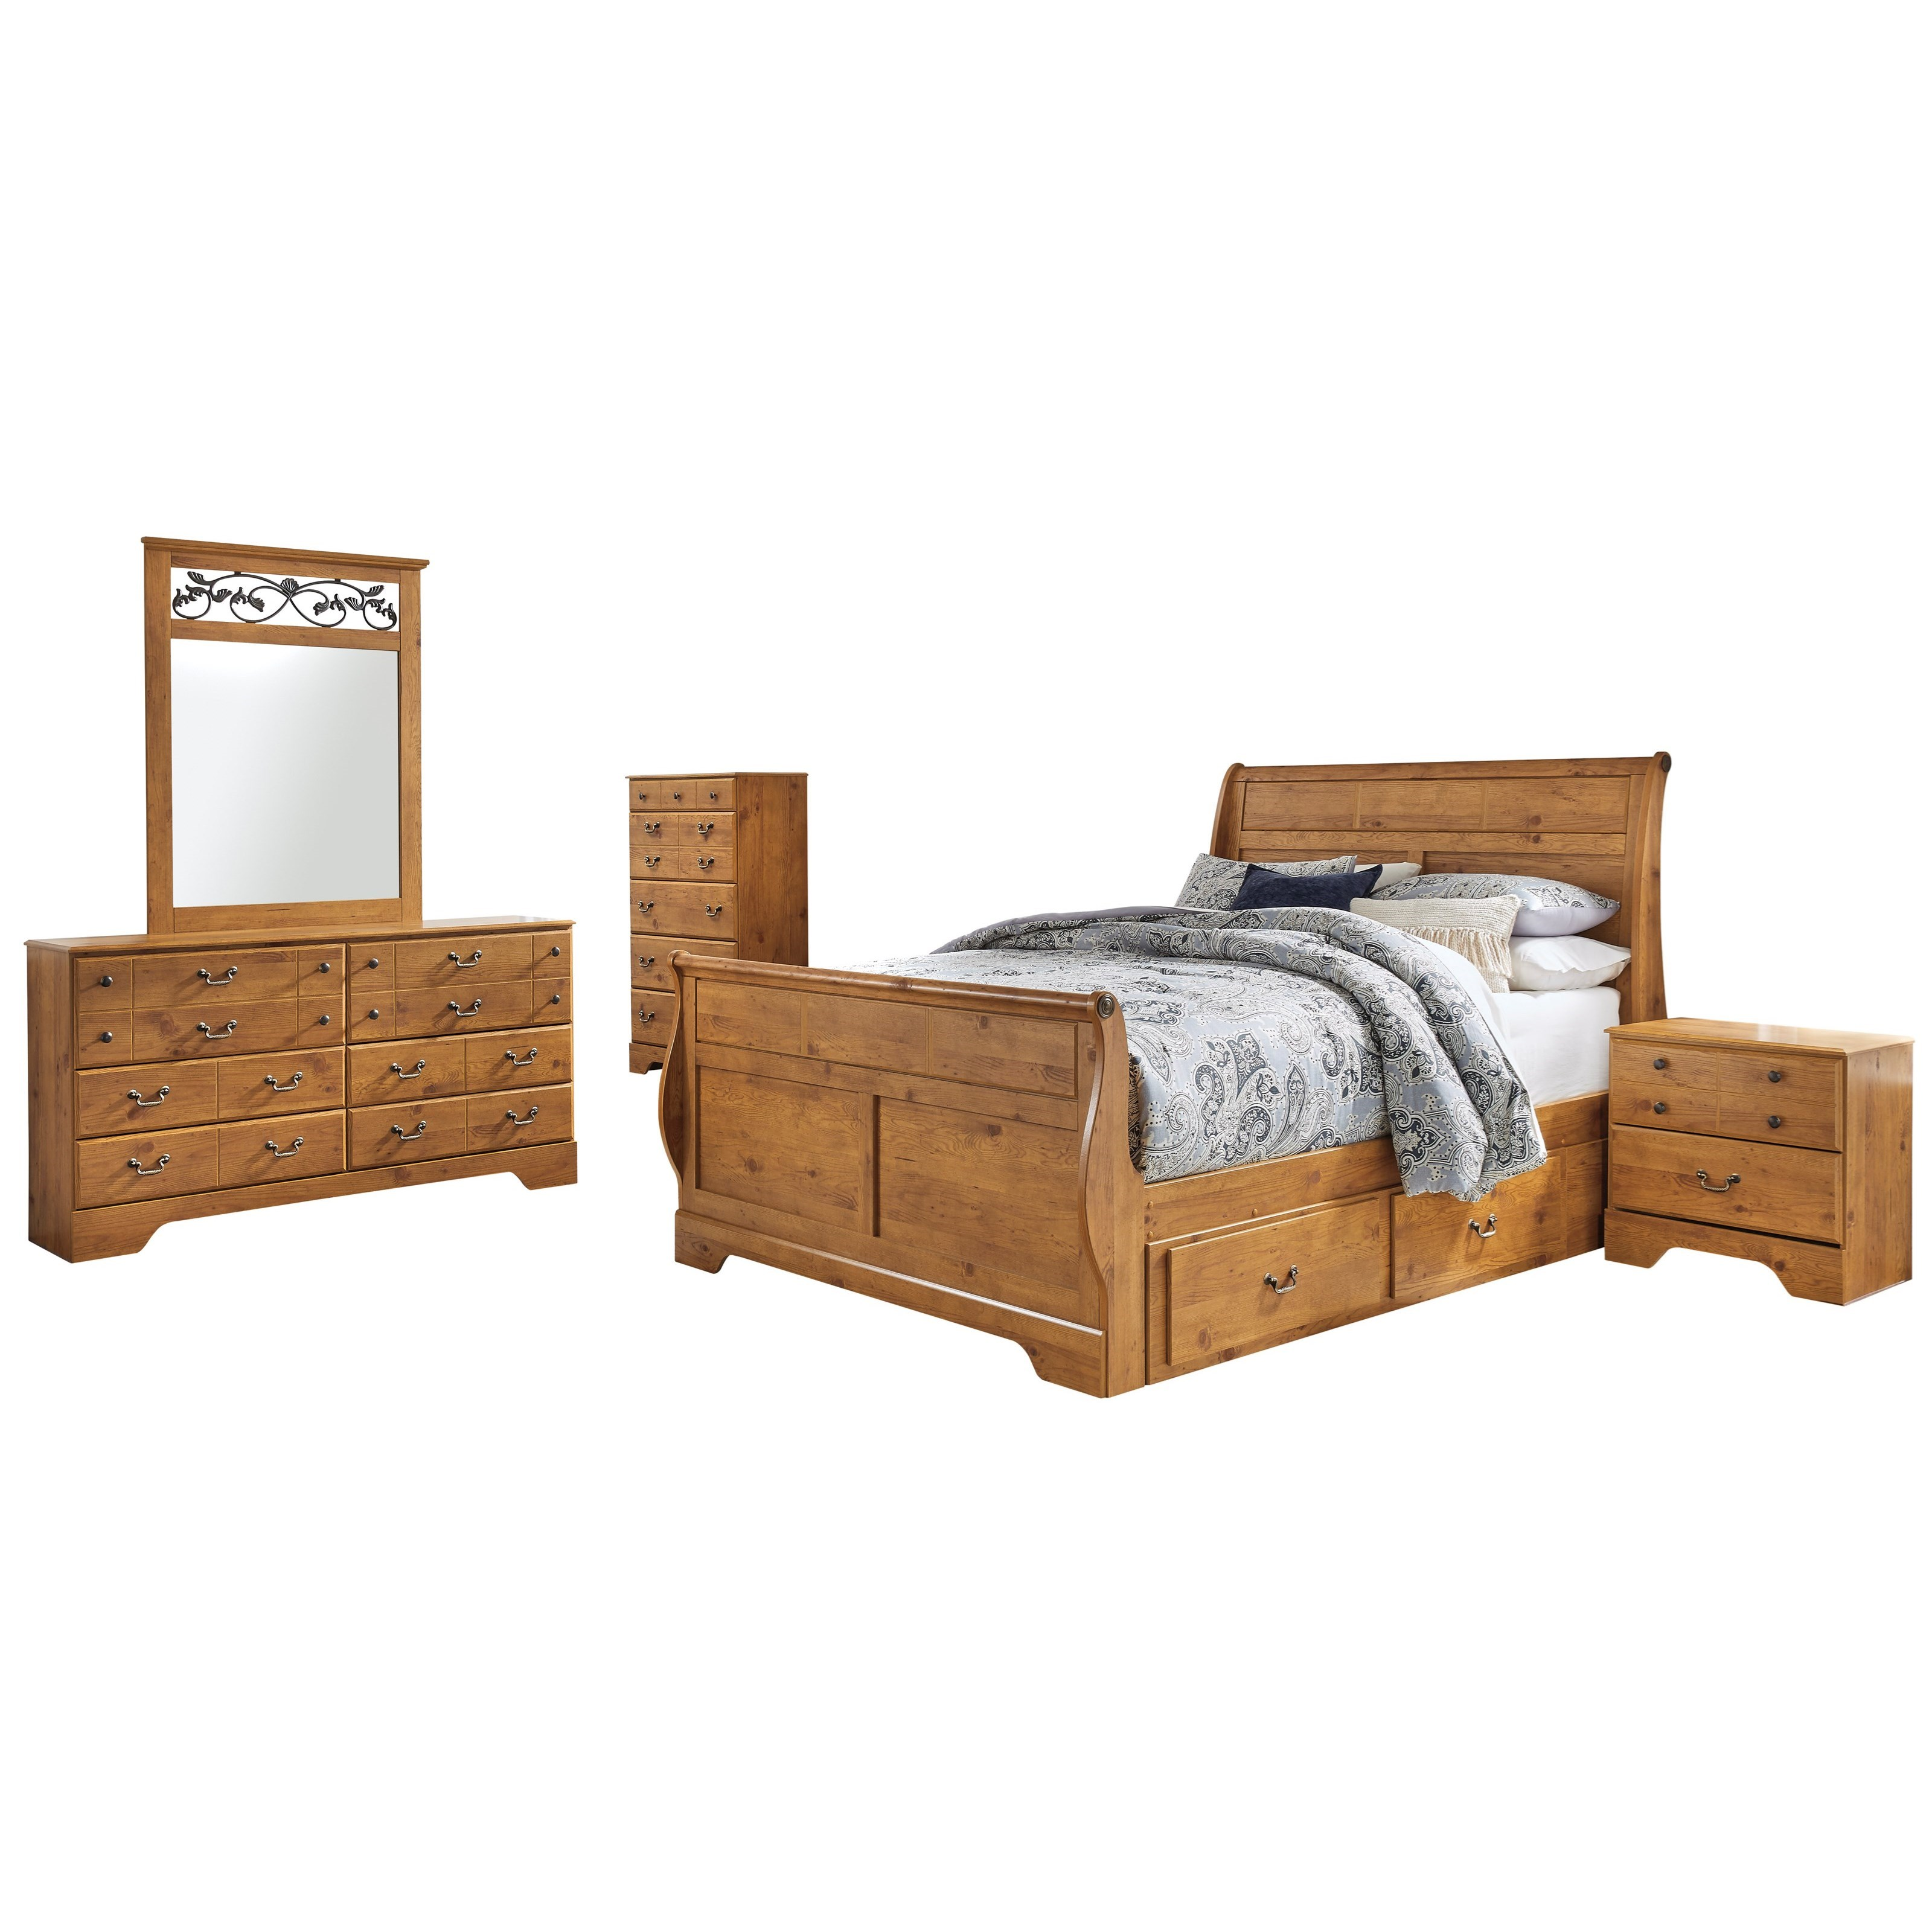 Bittersweet King Bedroom Group by Signature Design by Ashley at Zak's Warehouse Clearance Center